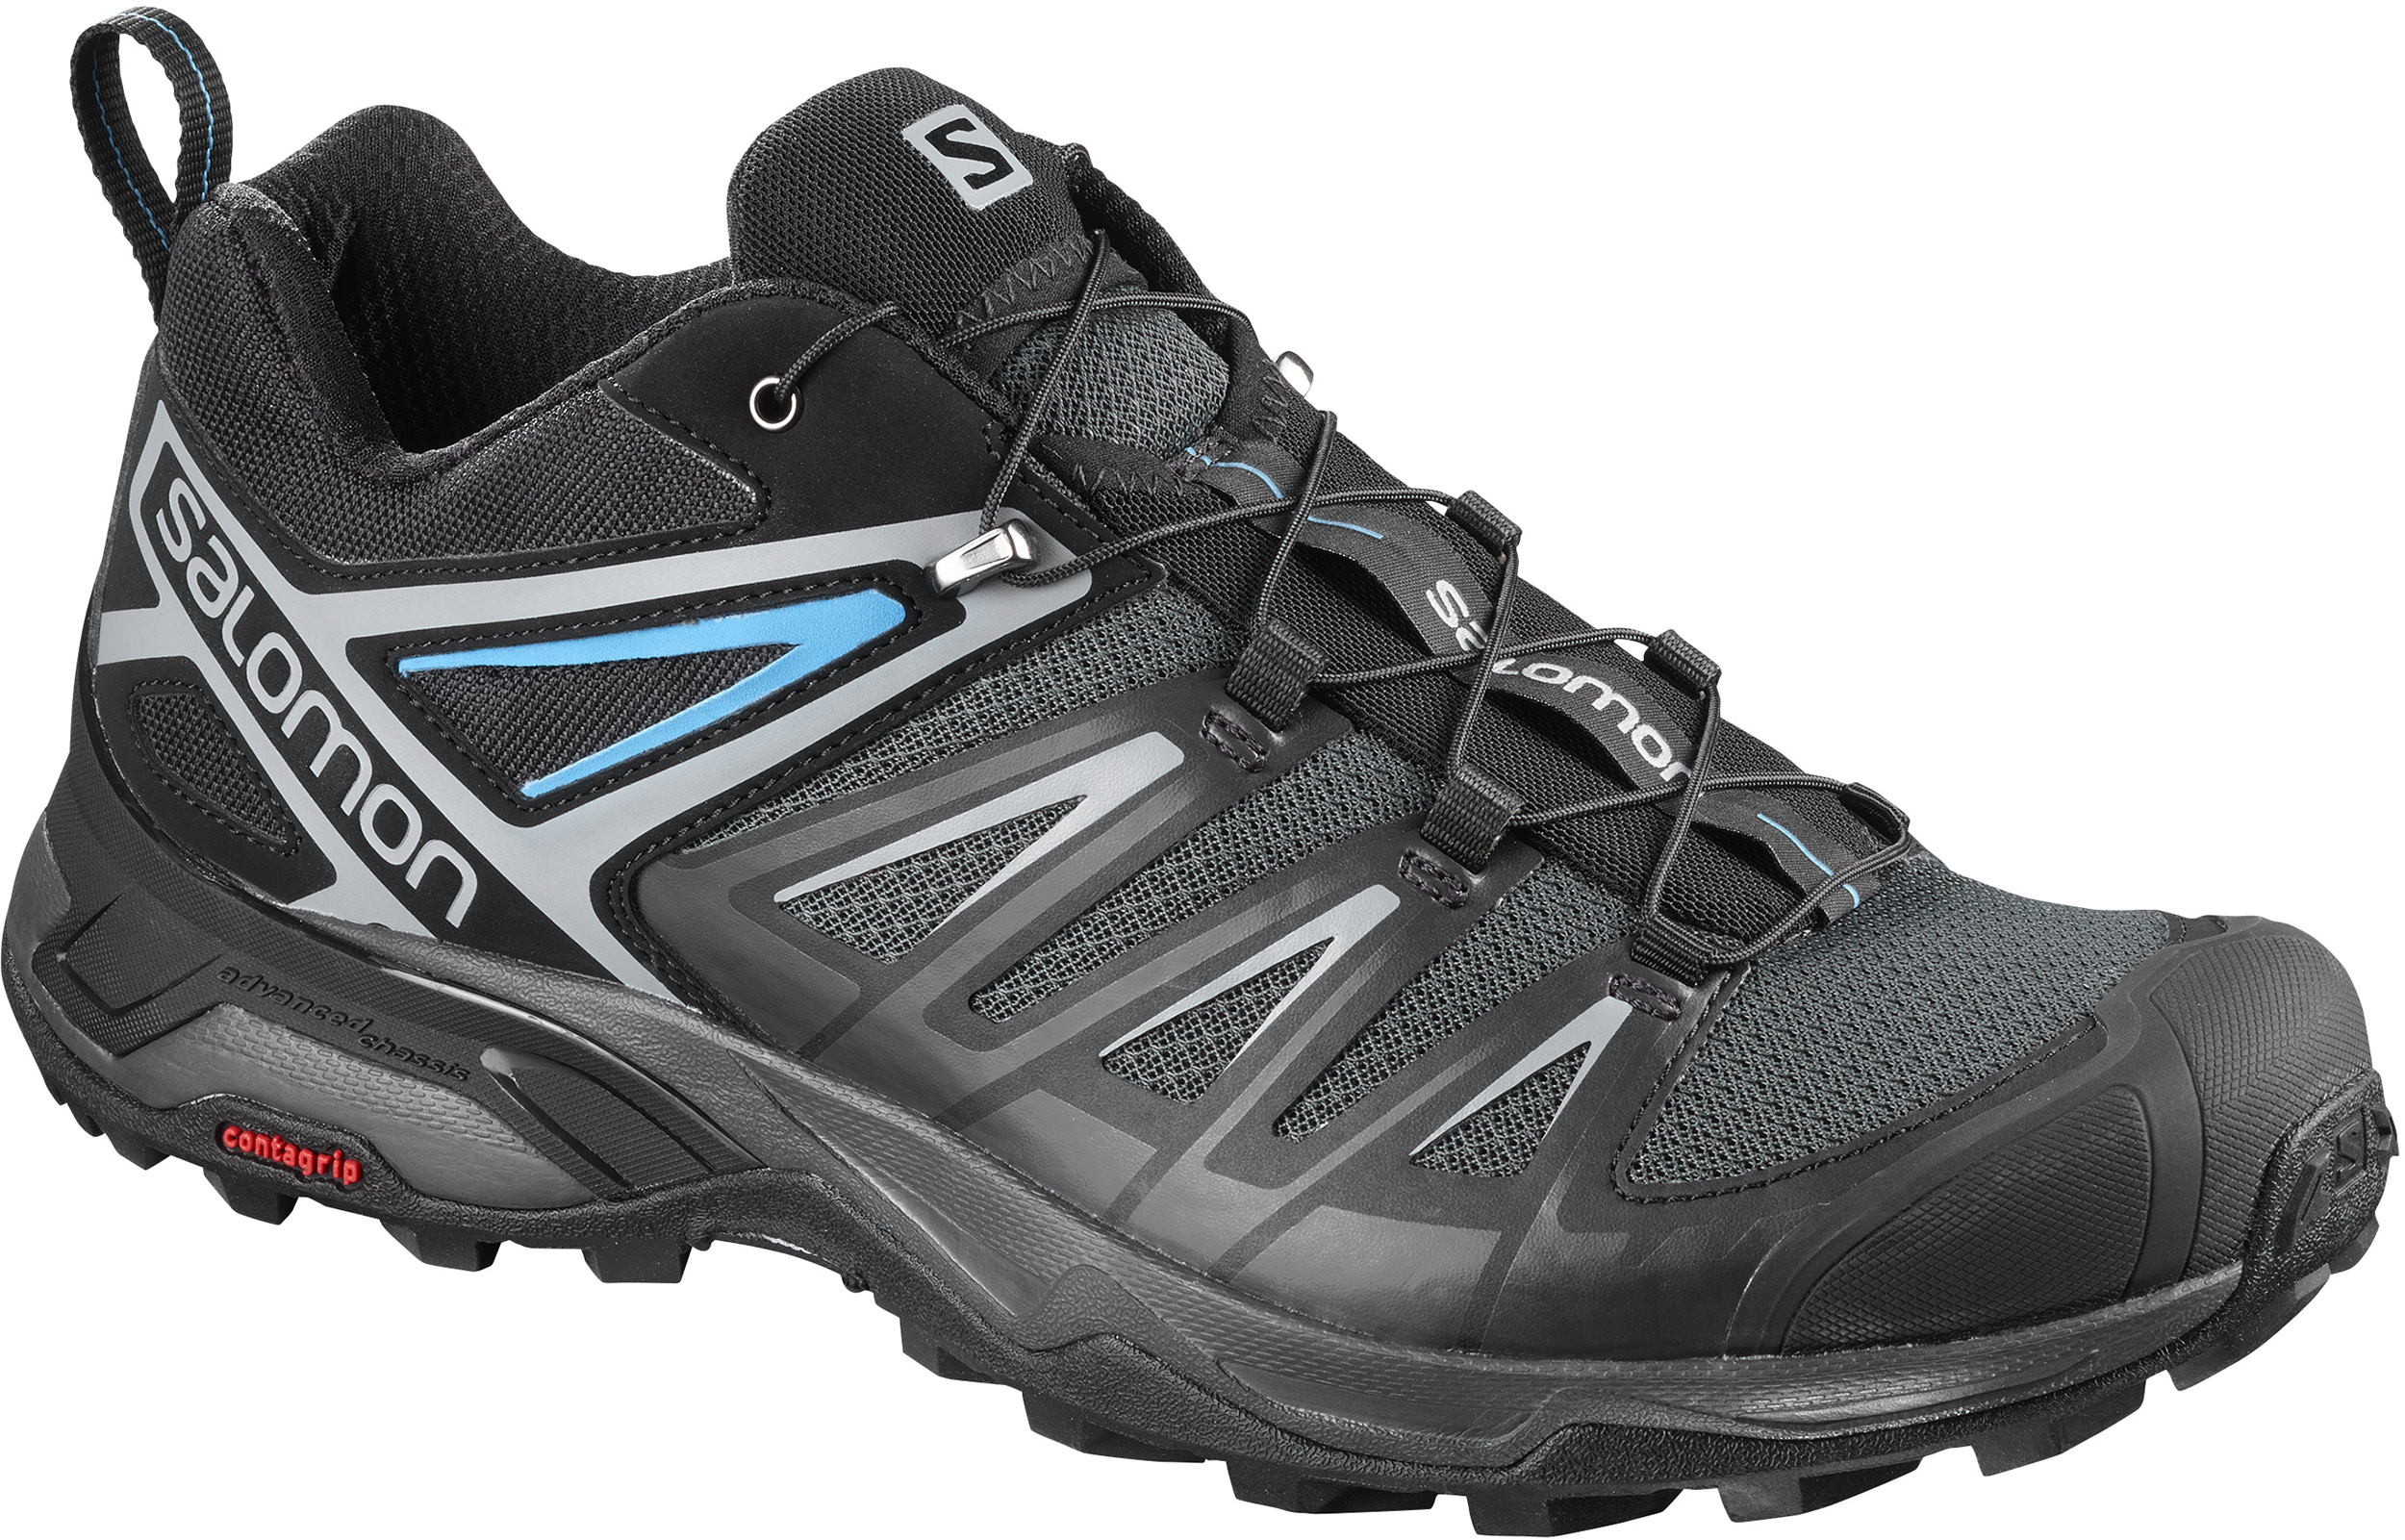 cf2275a2dff2 Salomon All products